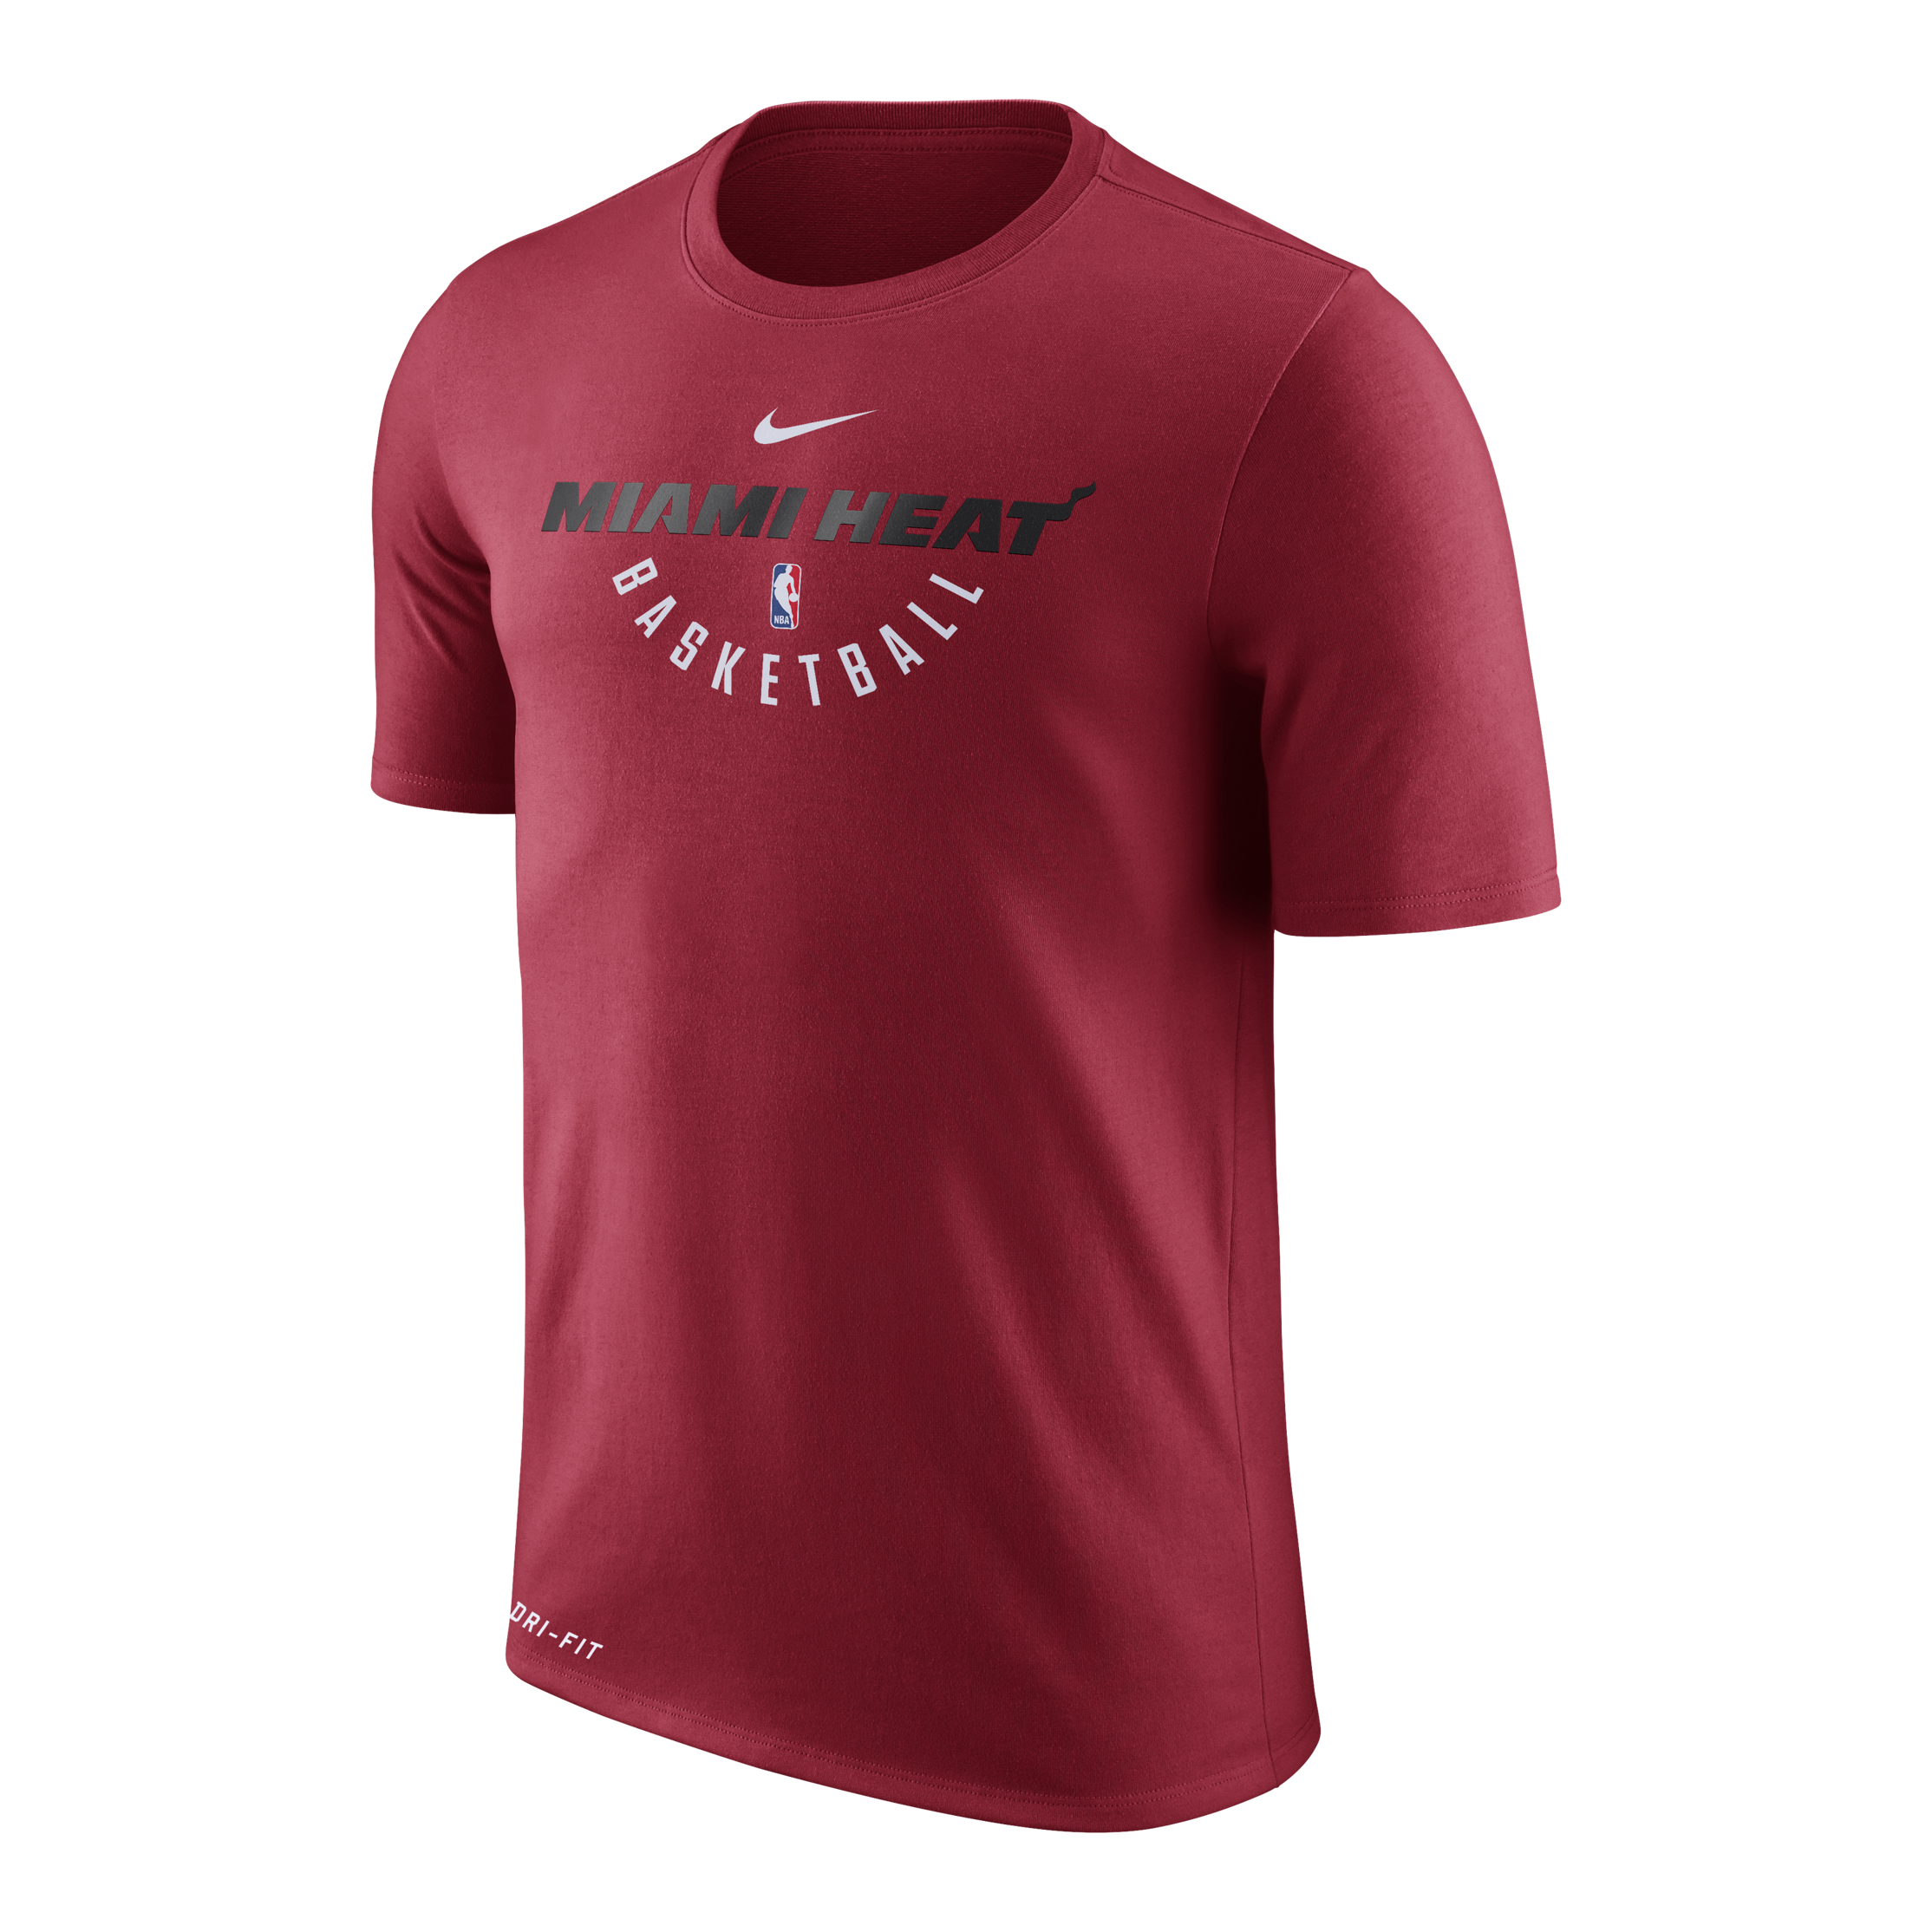 7bffbe73 ... Nike Miami HEAT SS Practice Tee - featured image ...